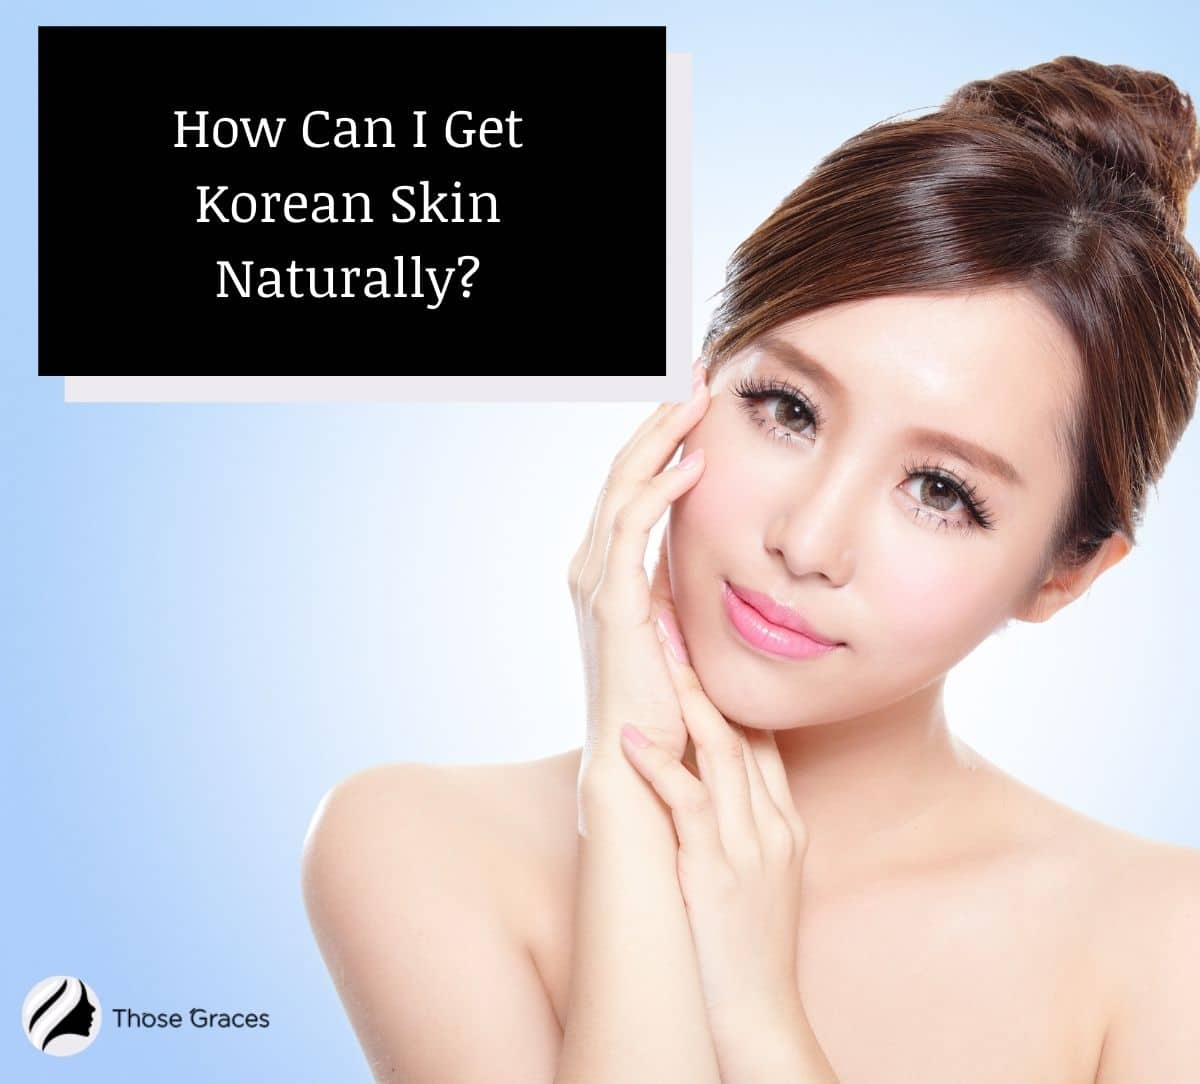 A beautiful Korean lady with flawless skin. How do we get Korean skin naturally?